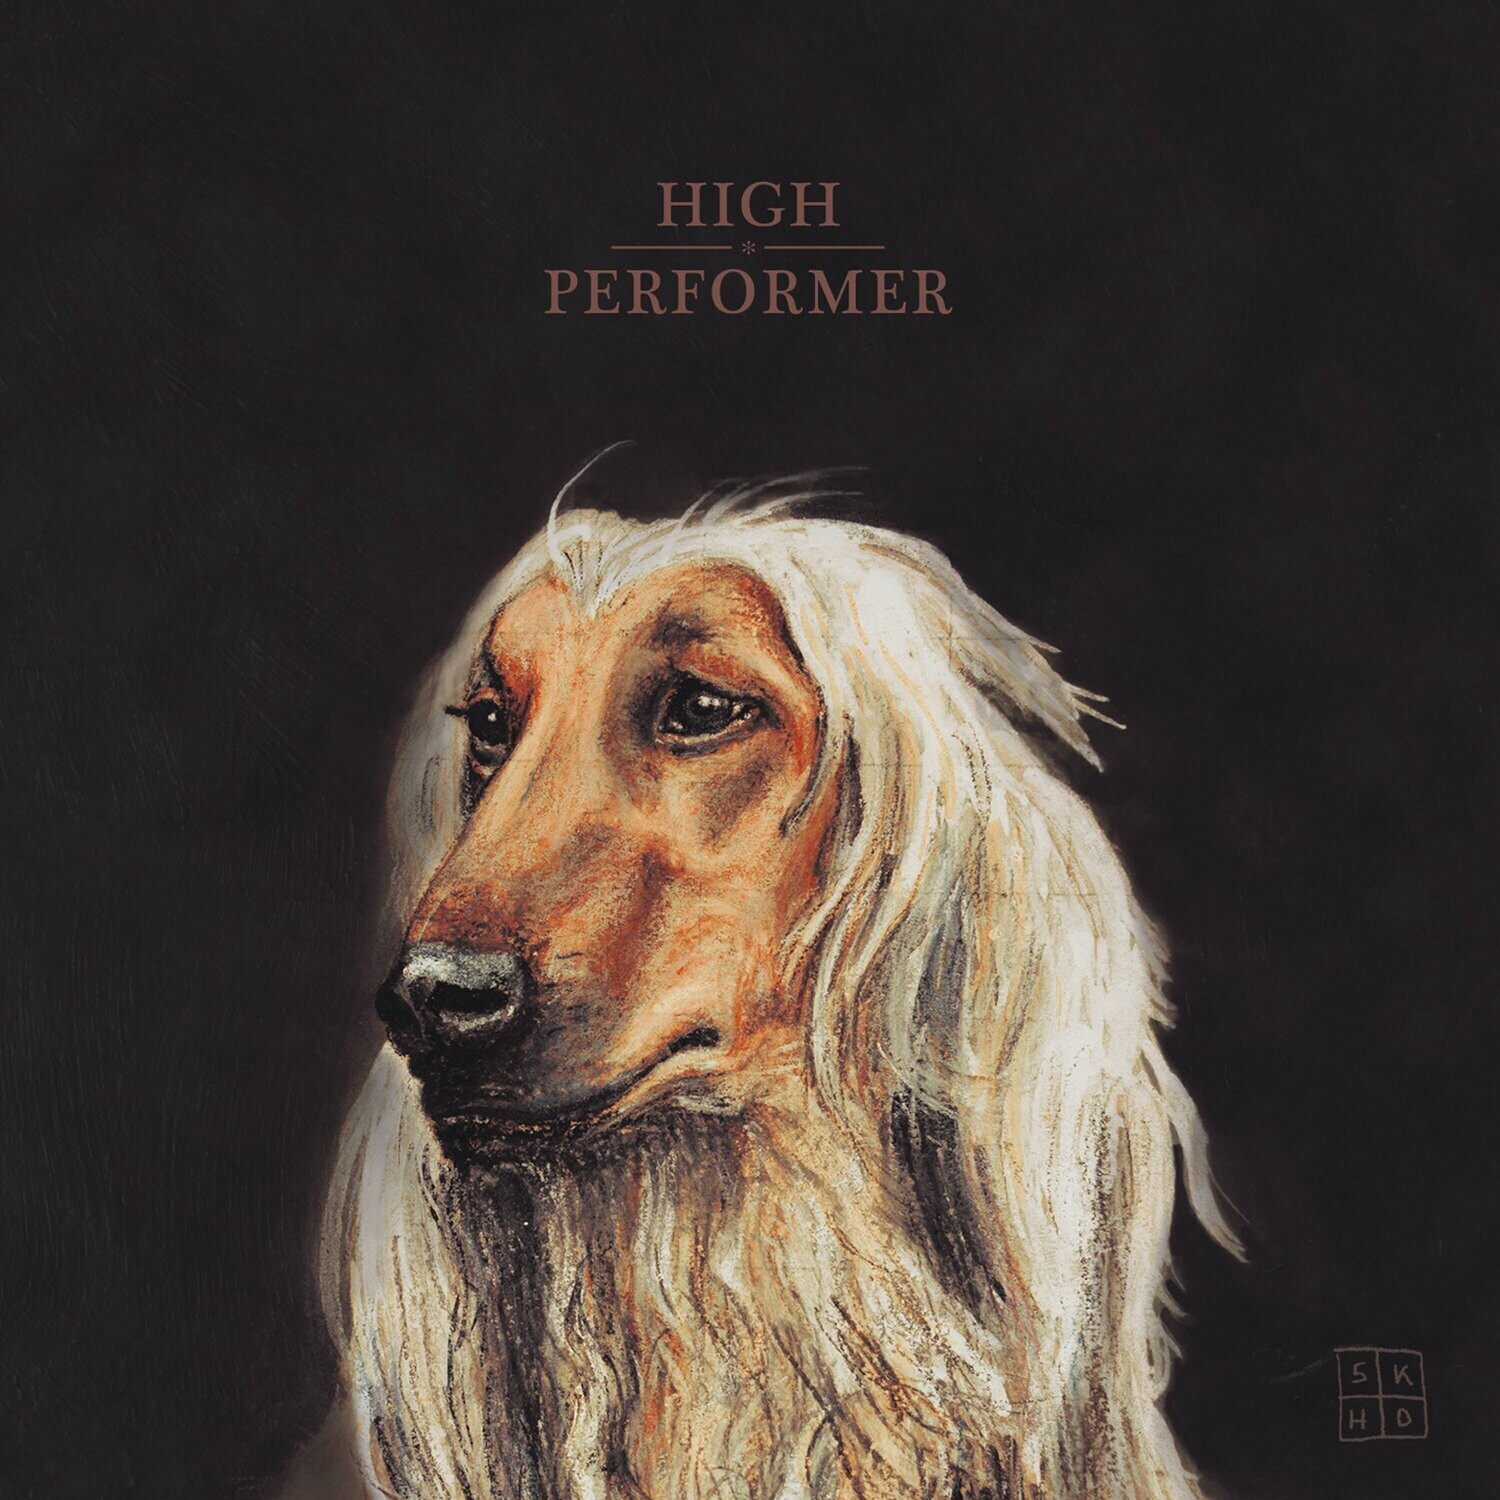 5K HD - High Performer CD (PREORDER)